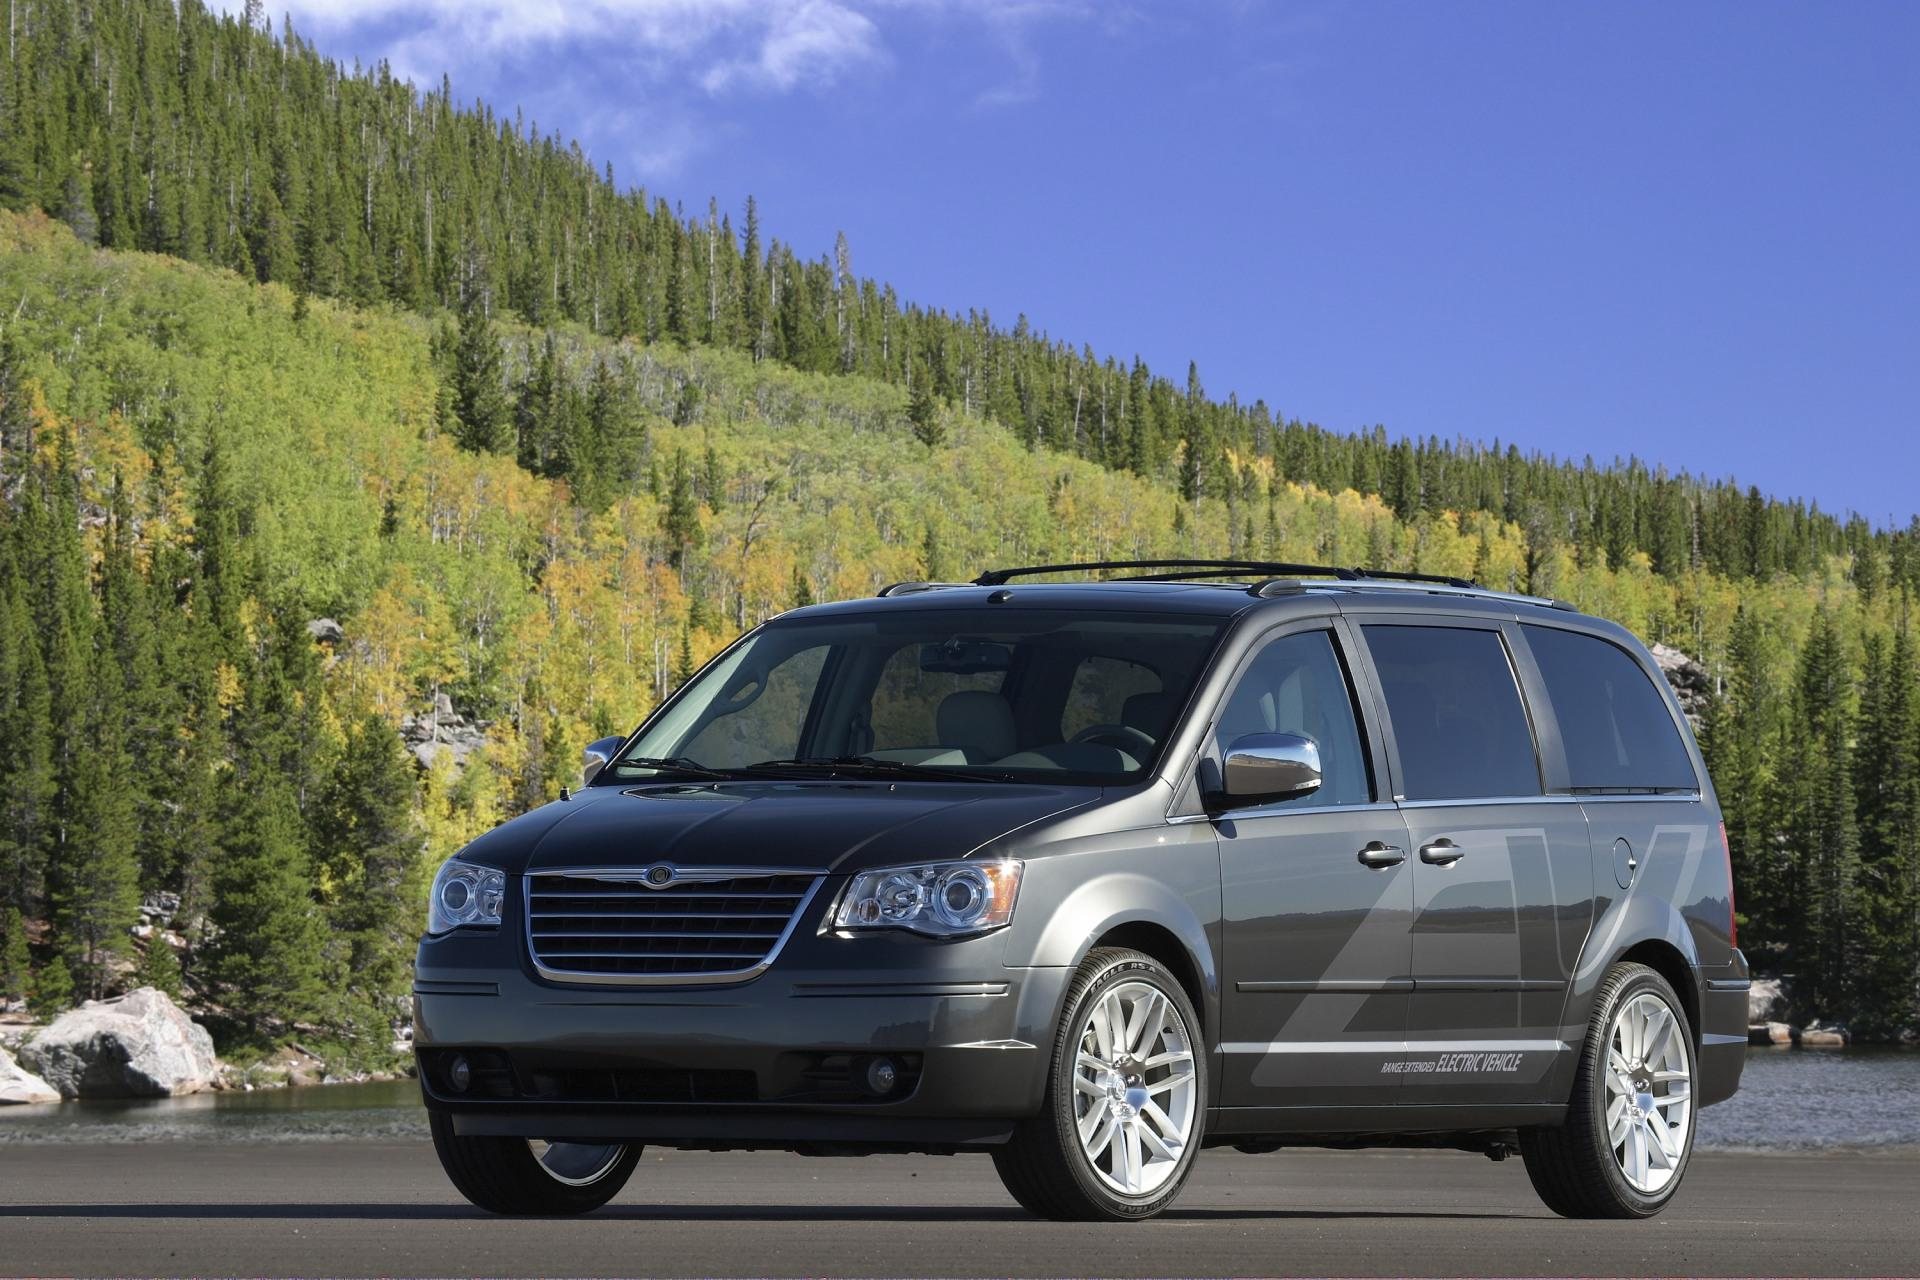 2009 Chrysler Town & Country EV News and Information